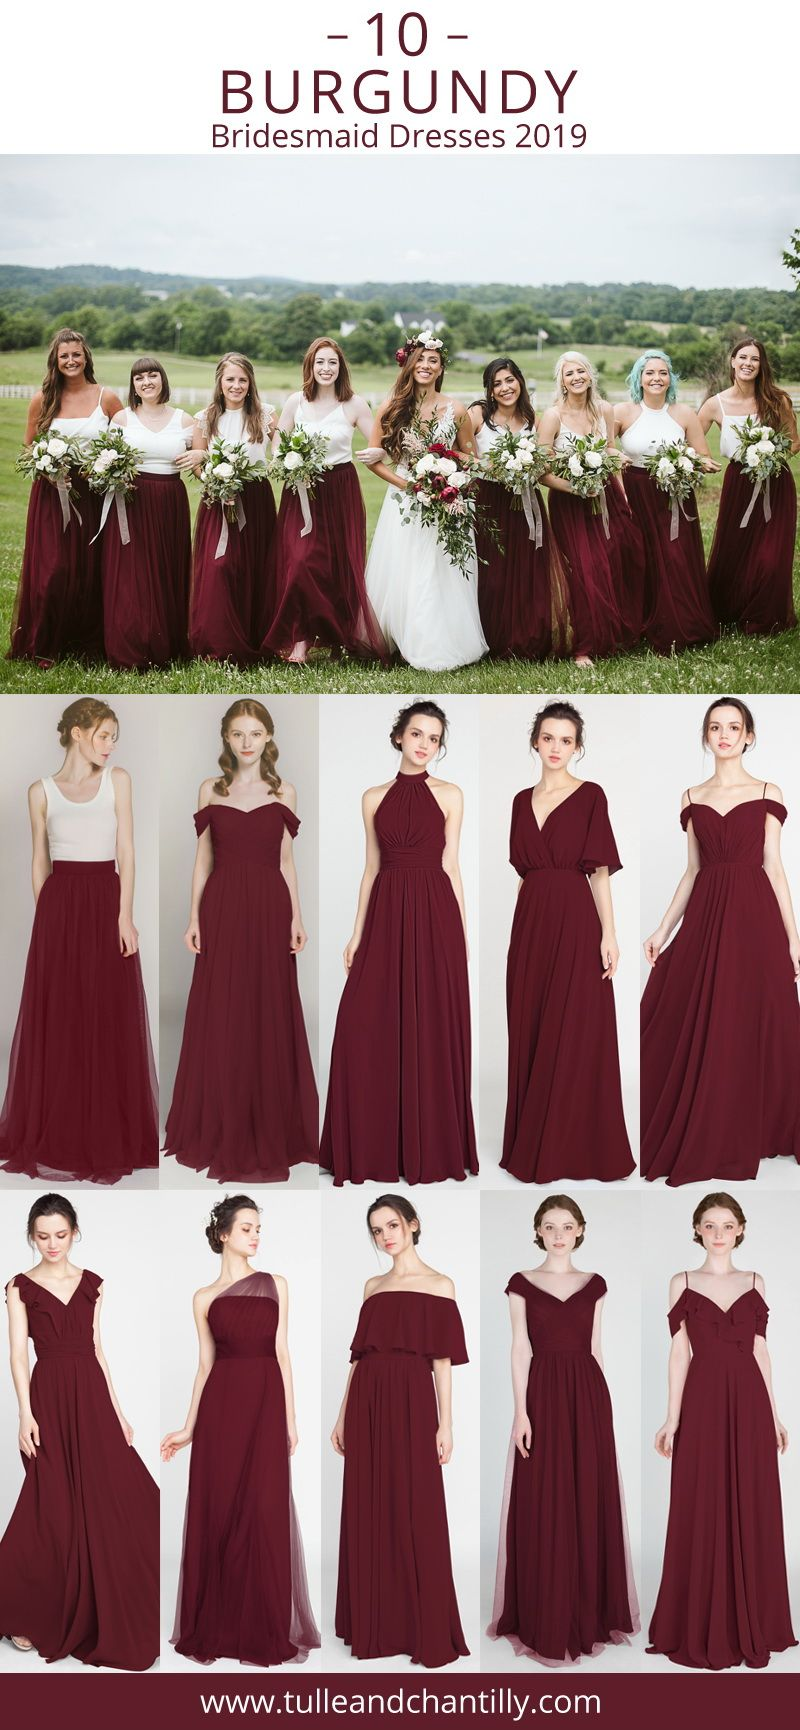 Long Short Bridesmaid Dresses 80 149 Size 2 30 And 50 Colors Burgundy Bridesmaid Dresses Bridesmaid Dresses Wine Red Bridesmaid Dresses